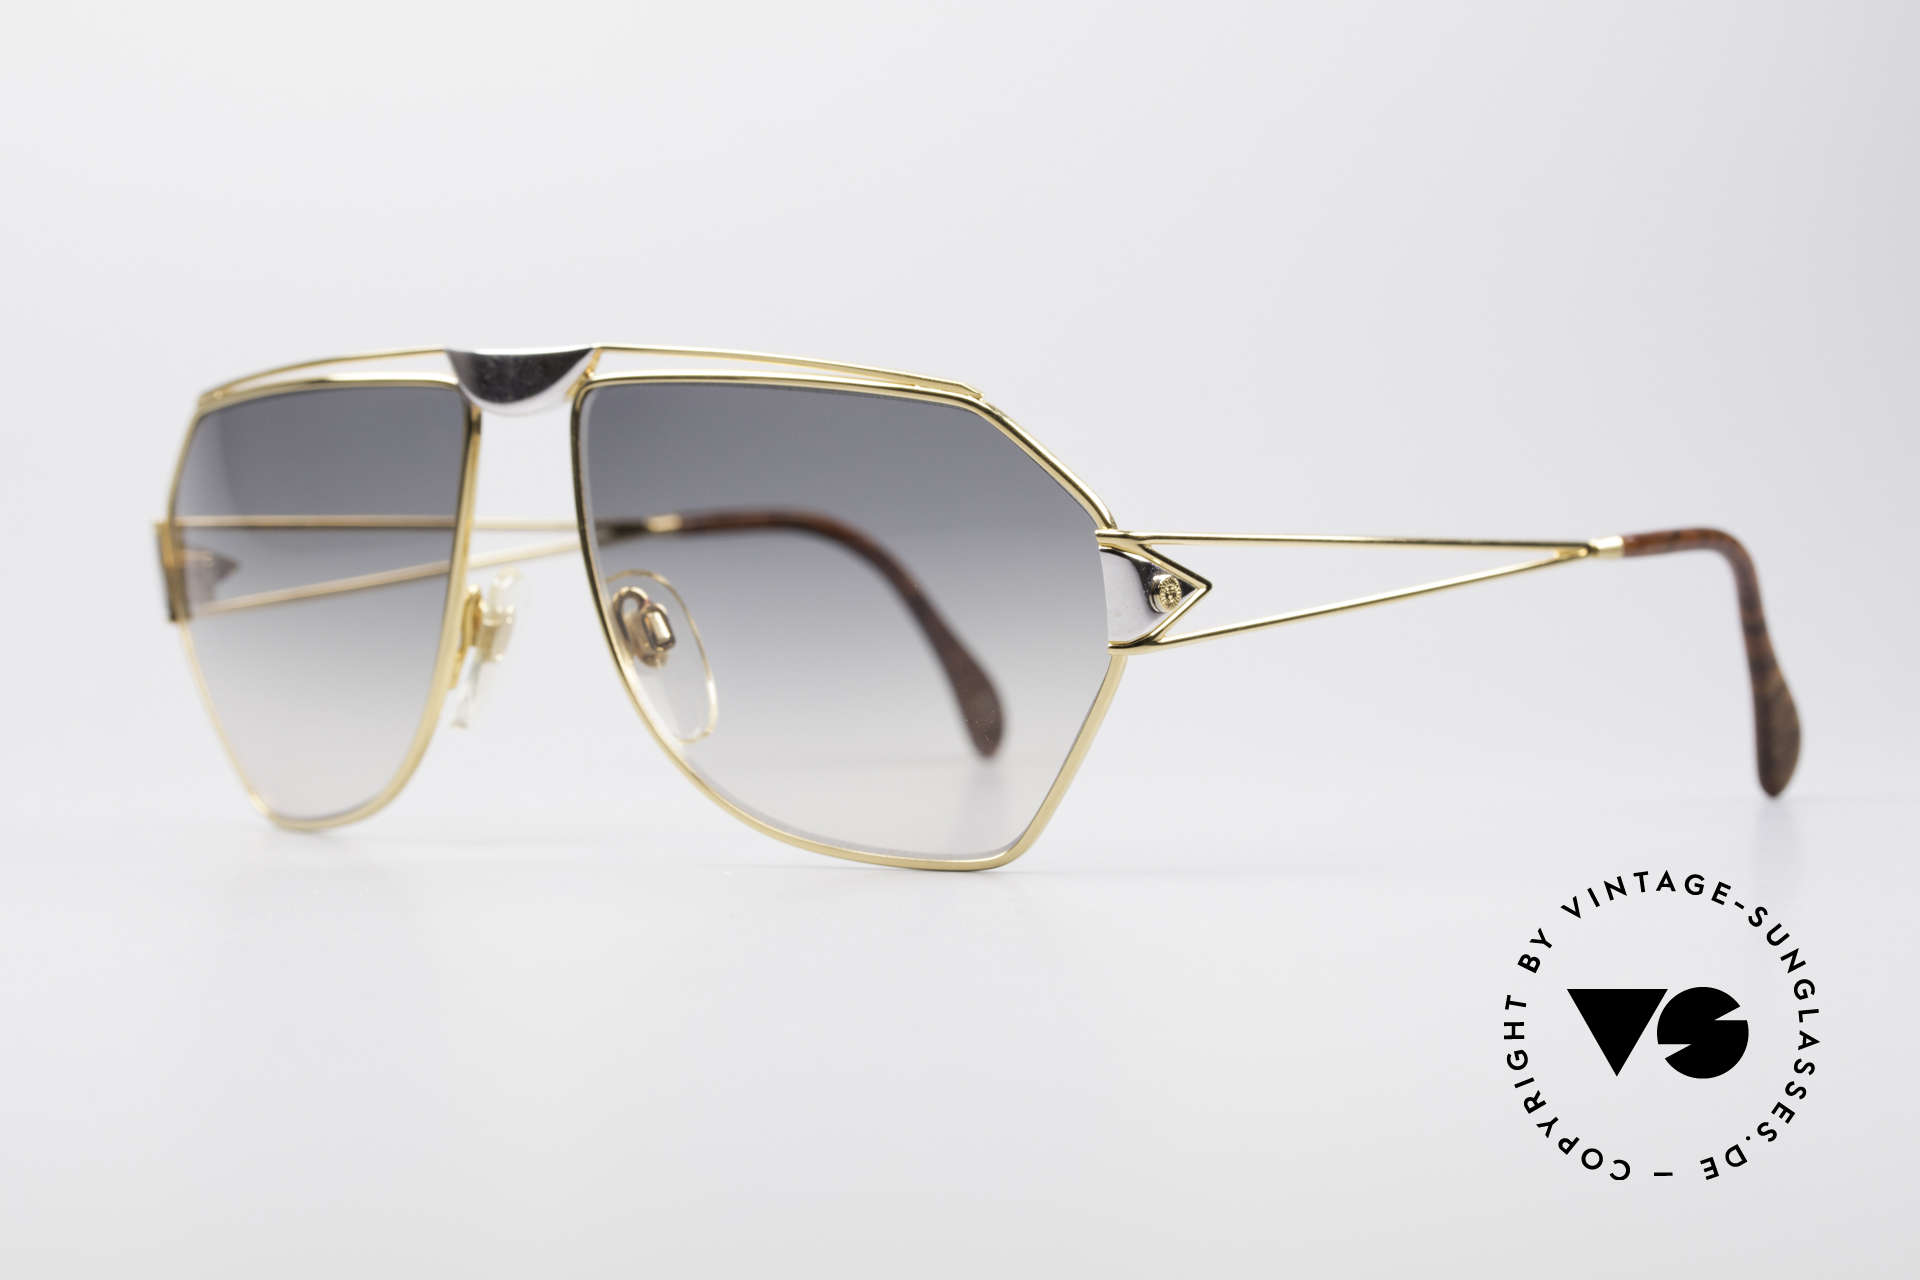 St. Moritz 403 80's Jupiter Sunglasses, 80's limited-lot production (every frame is numbered), Made for Men